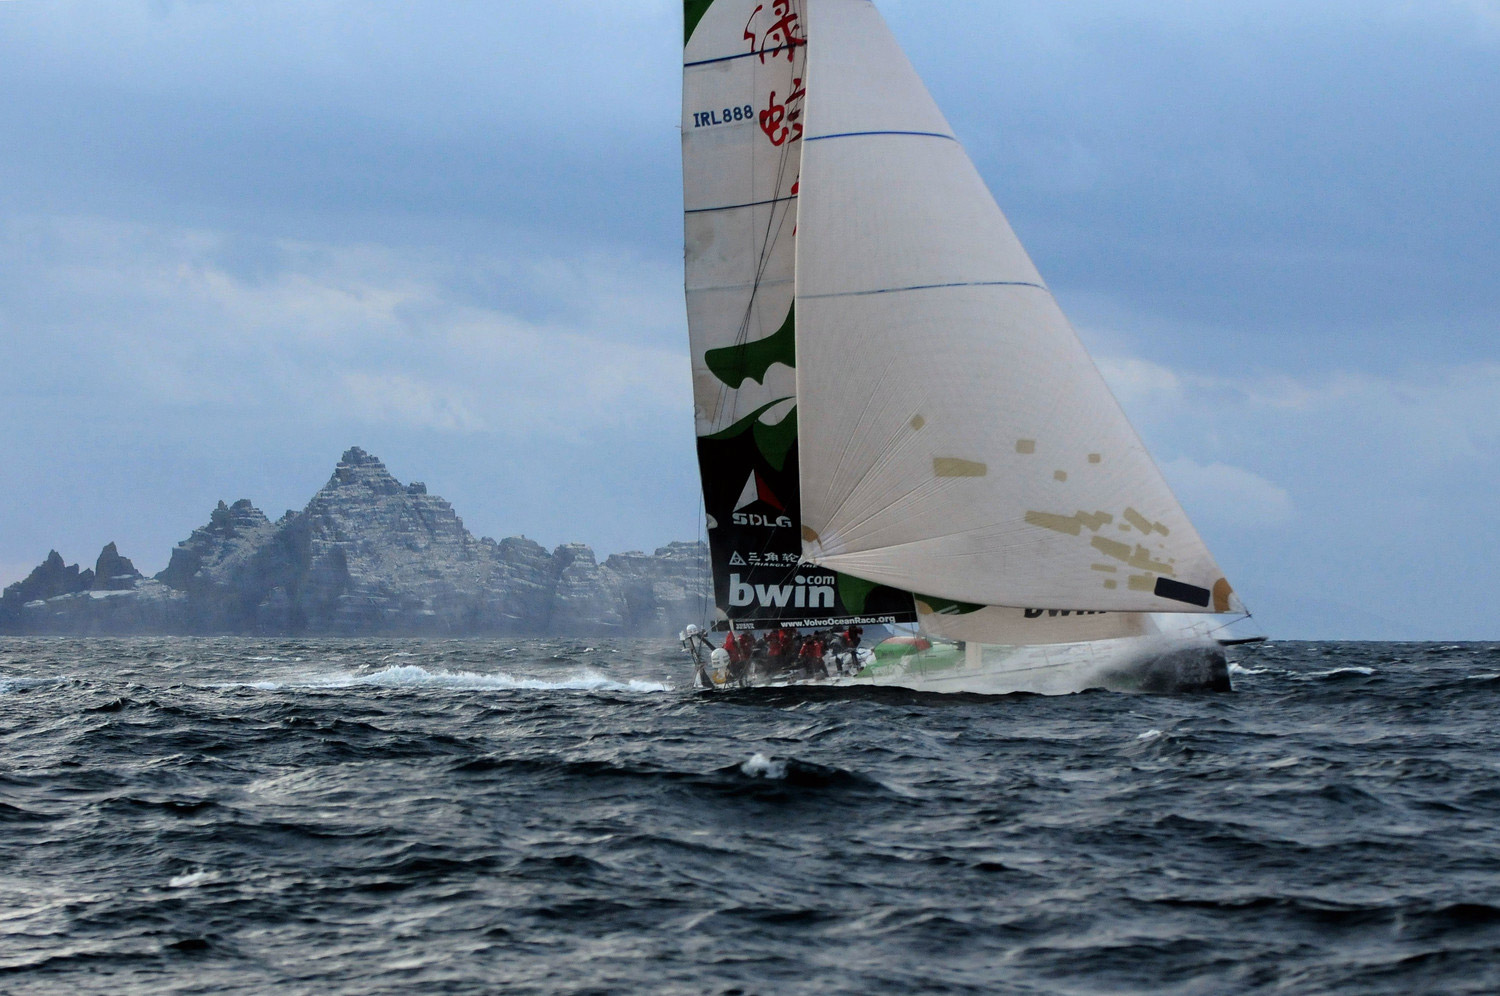 DAmian Foxall top ocean race moments: Greendragon sails past the Irish Coast during the 2008-09 Volvo Ocean Race